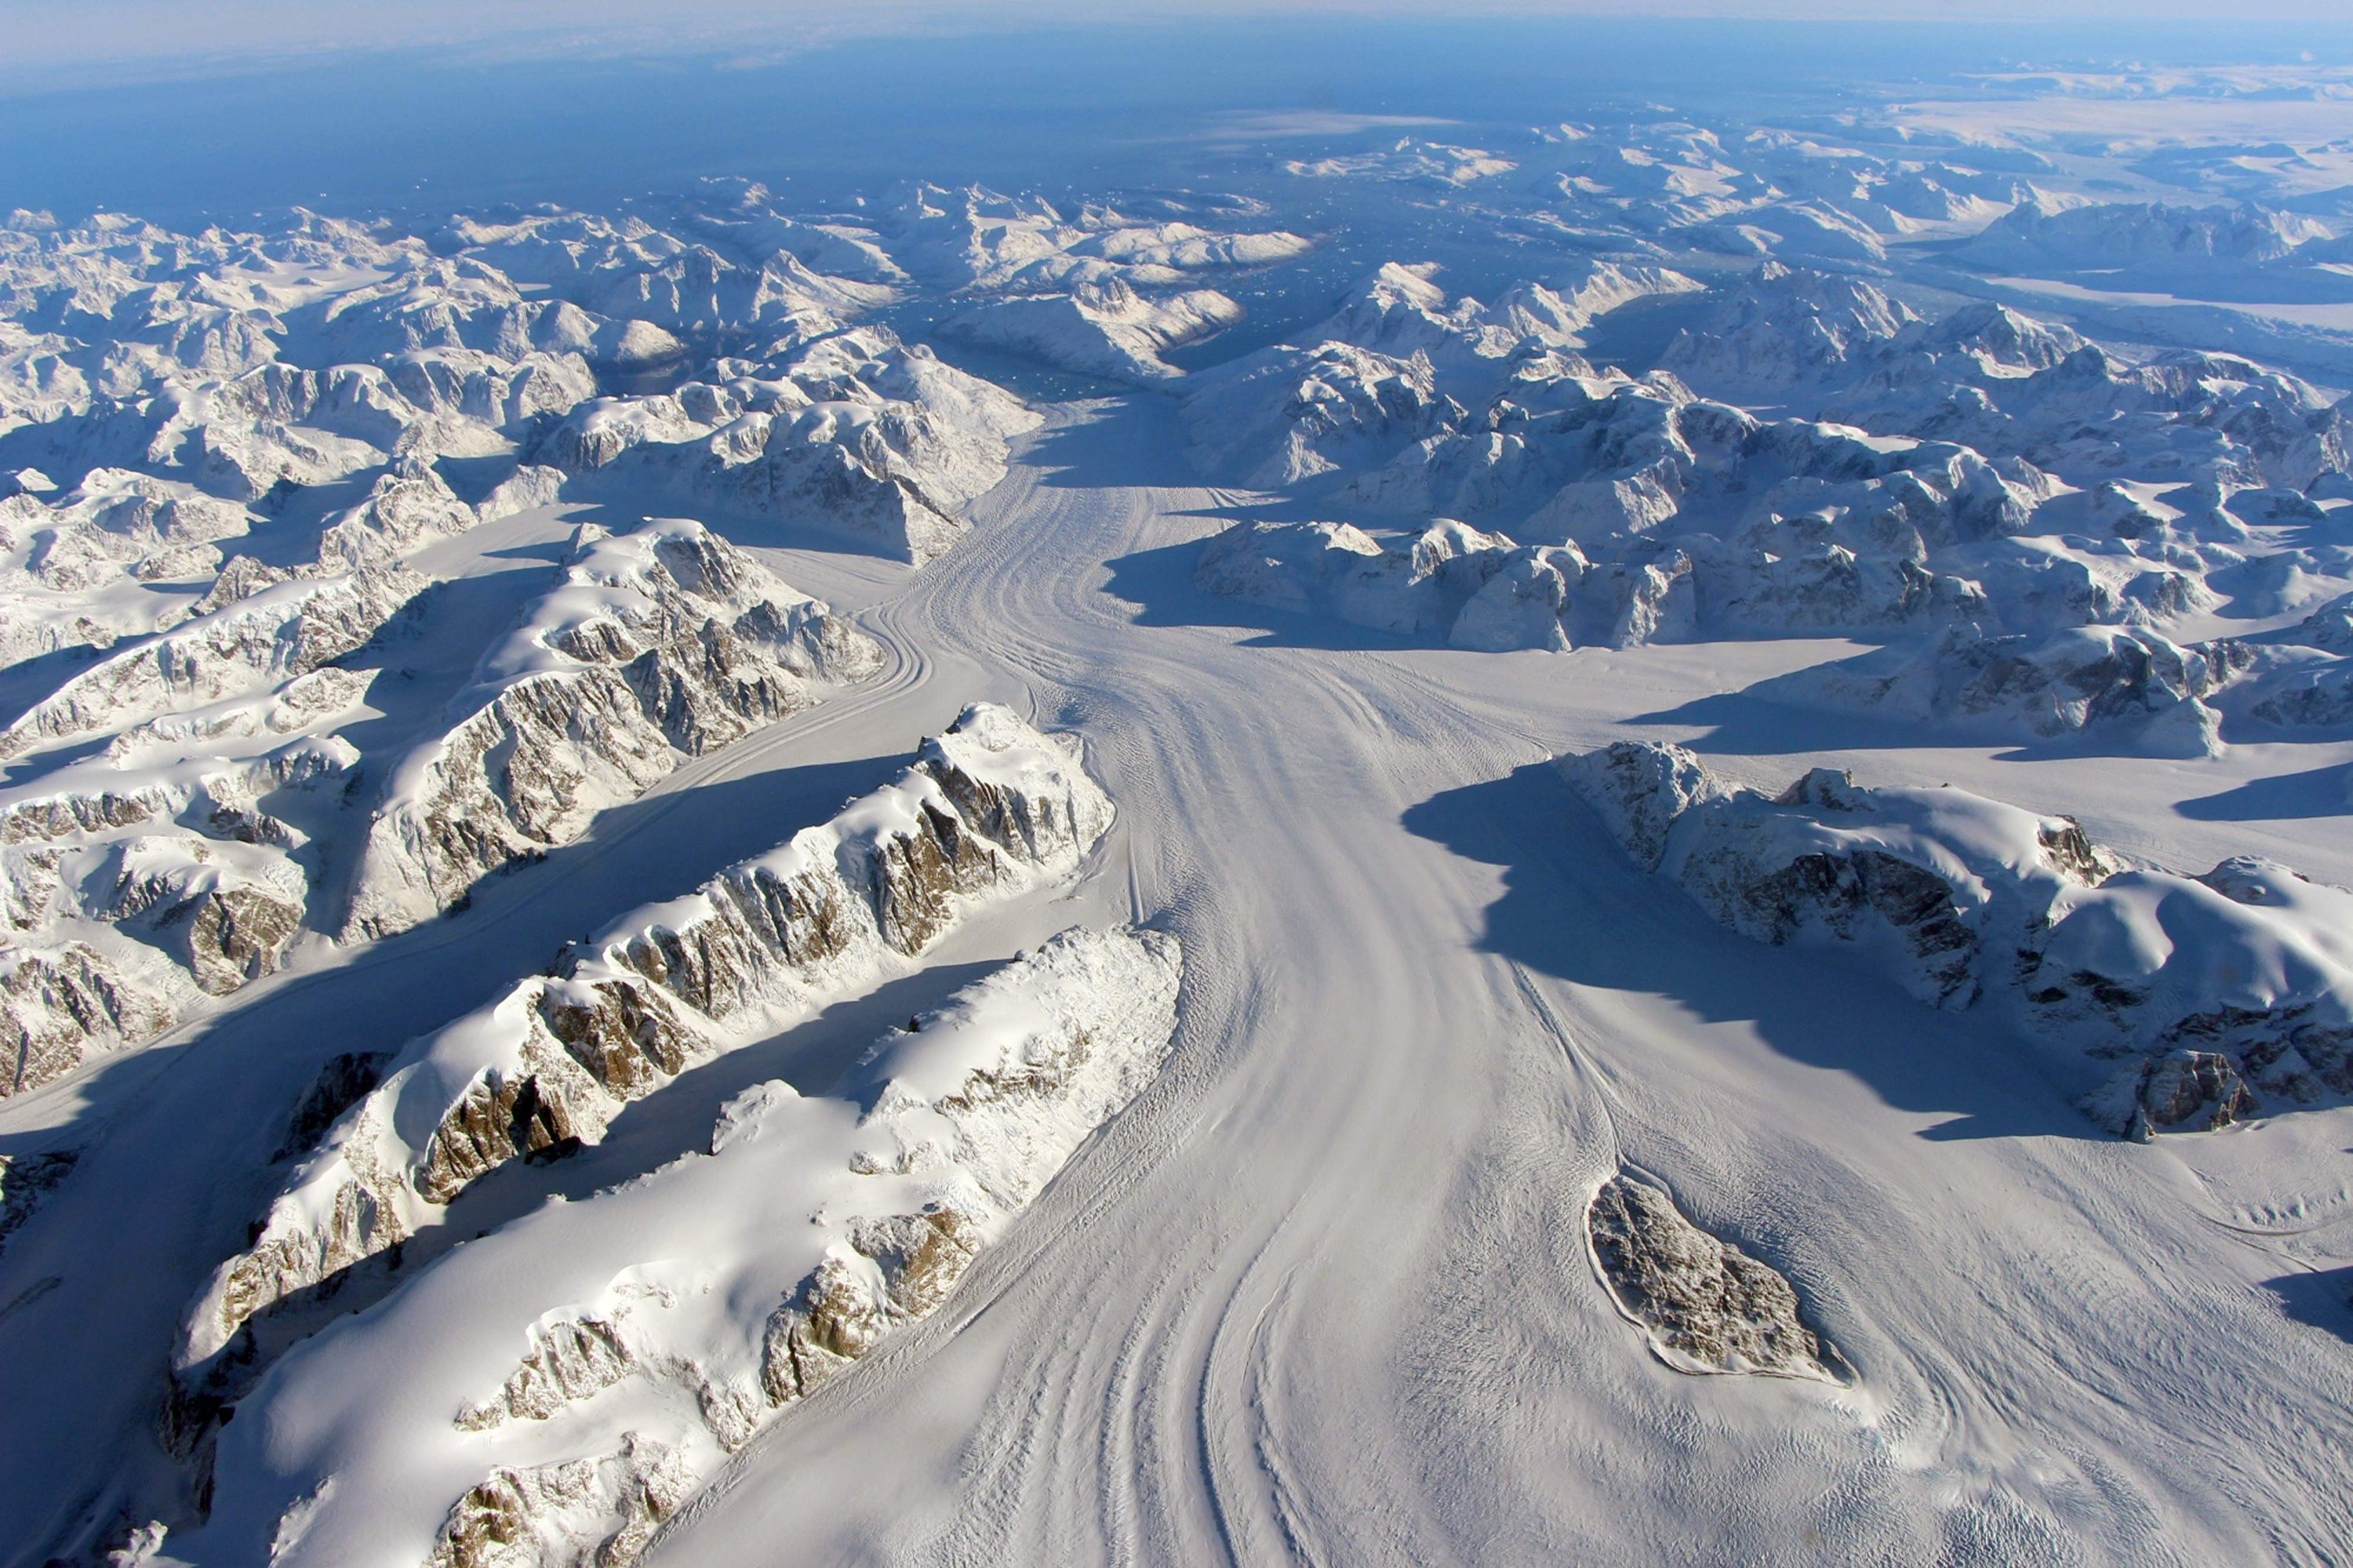 This file photo taken on October 13, 2015 and obtained on November 24, 2015 by NASA shows the Heimdal Glacier in southern Greenland, captured from NASA Langley Research Center's Falcon 20 aircraft flying 33,000 feet above mean sea level during NASA's Operation IceBridge, an airborne survey of polar ice. (AFP Photo)